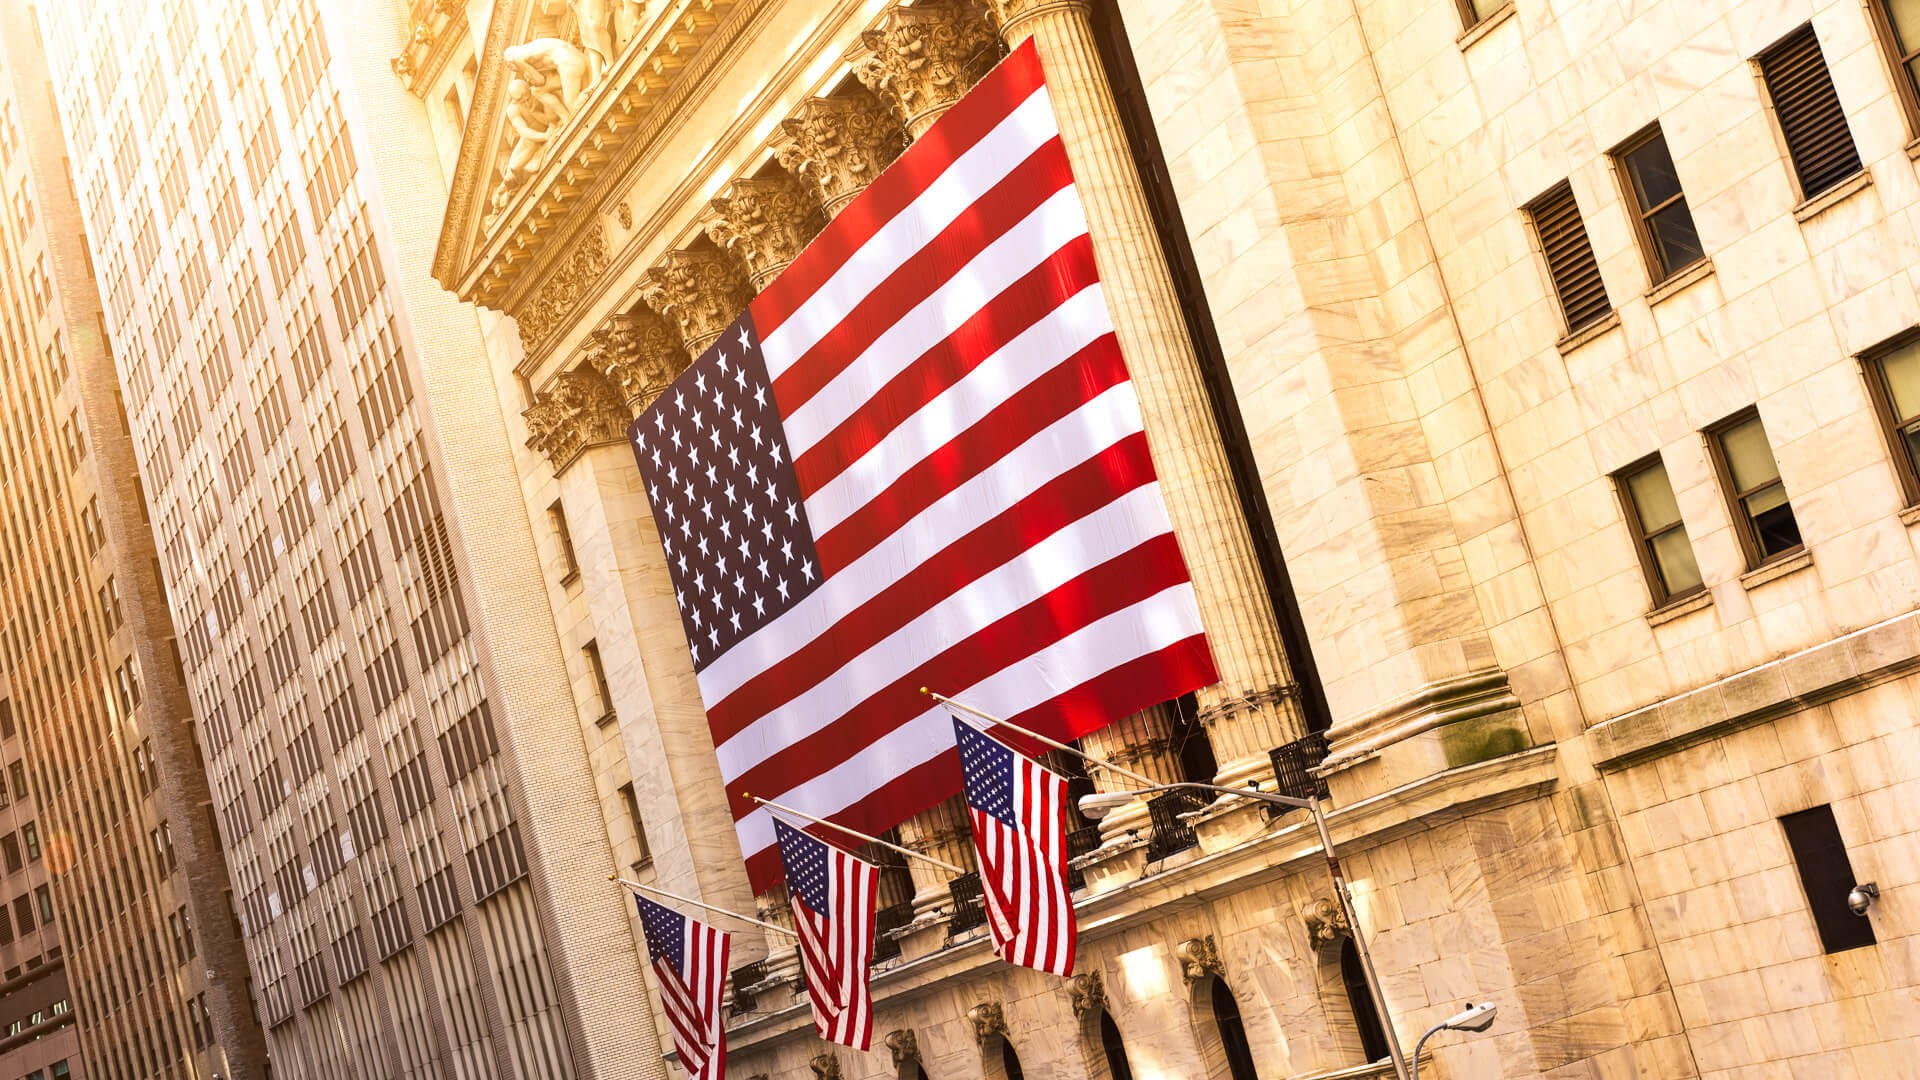 Famous Wall street and the building in New York, New York Stock Exchange with patriot flag.